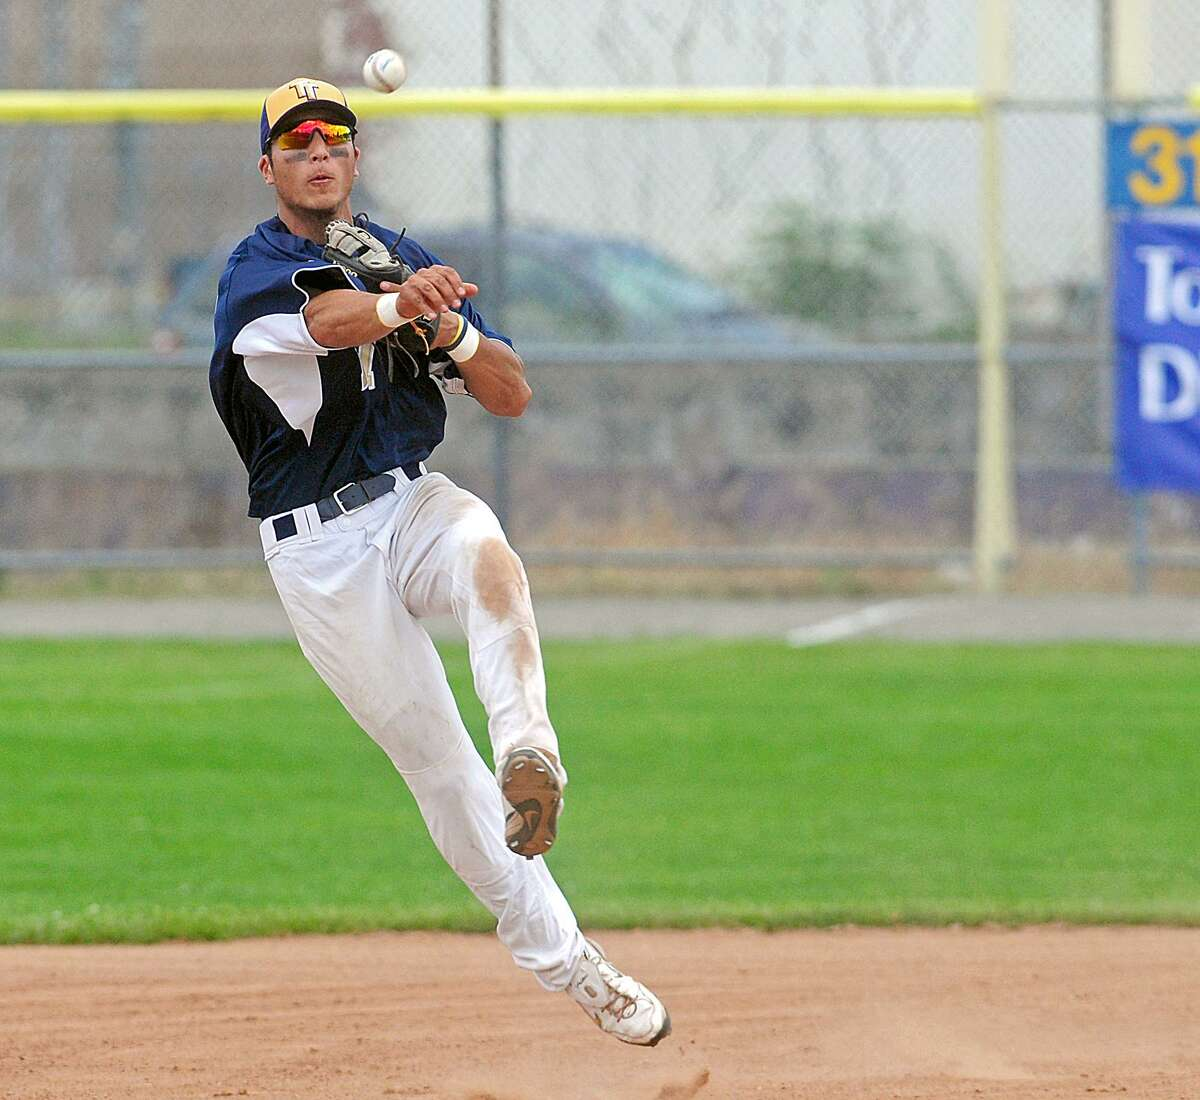 A Torrington Titans player makes a running play to save a basehit. File Photo/Register Citizen